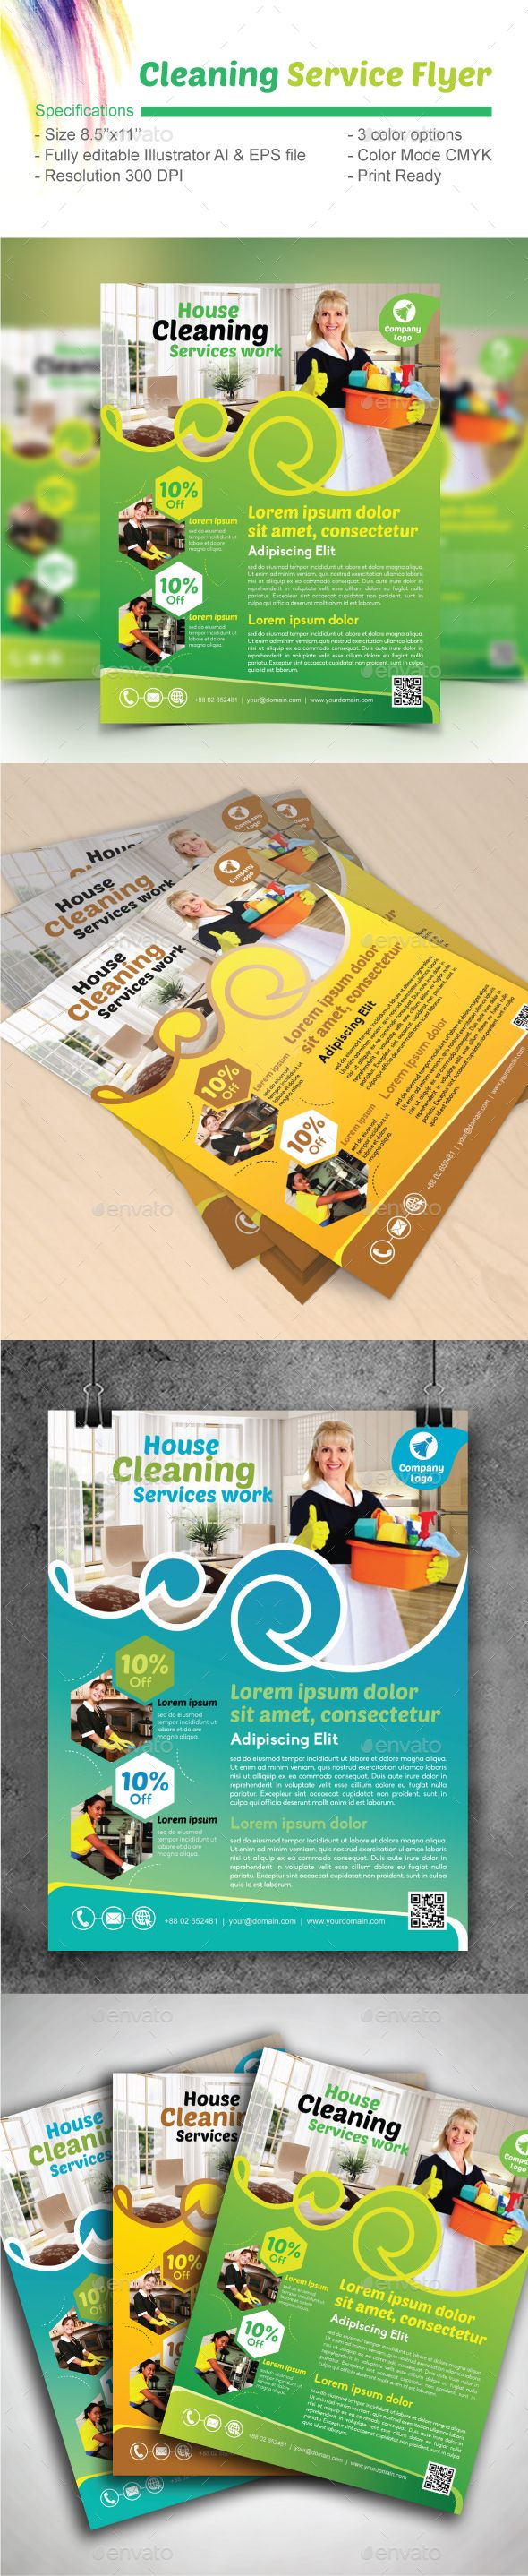 cleaning services flyers samples